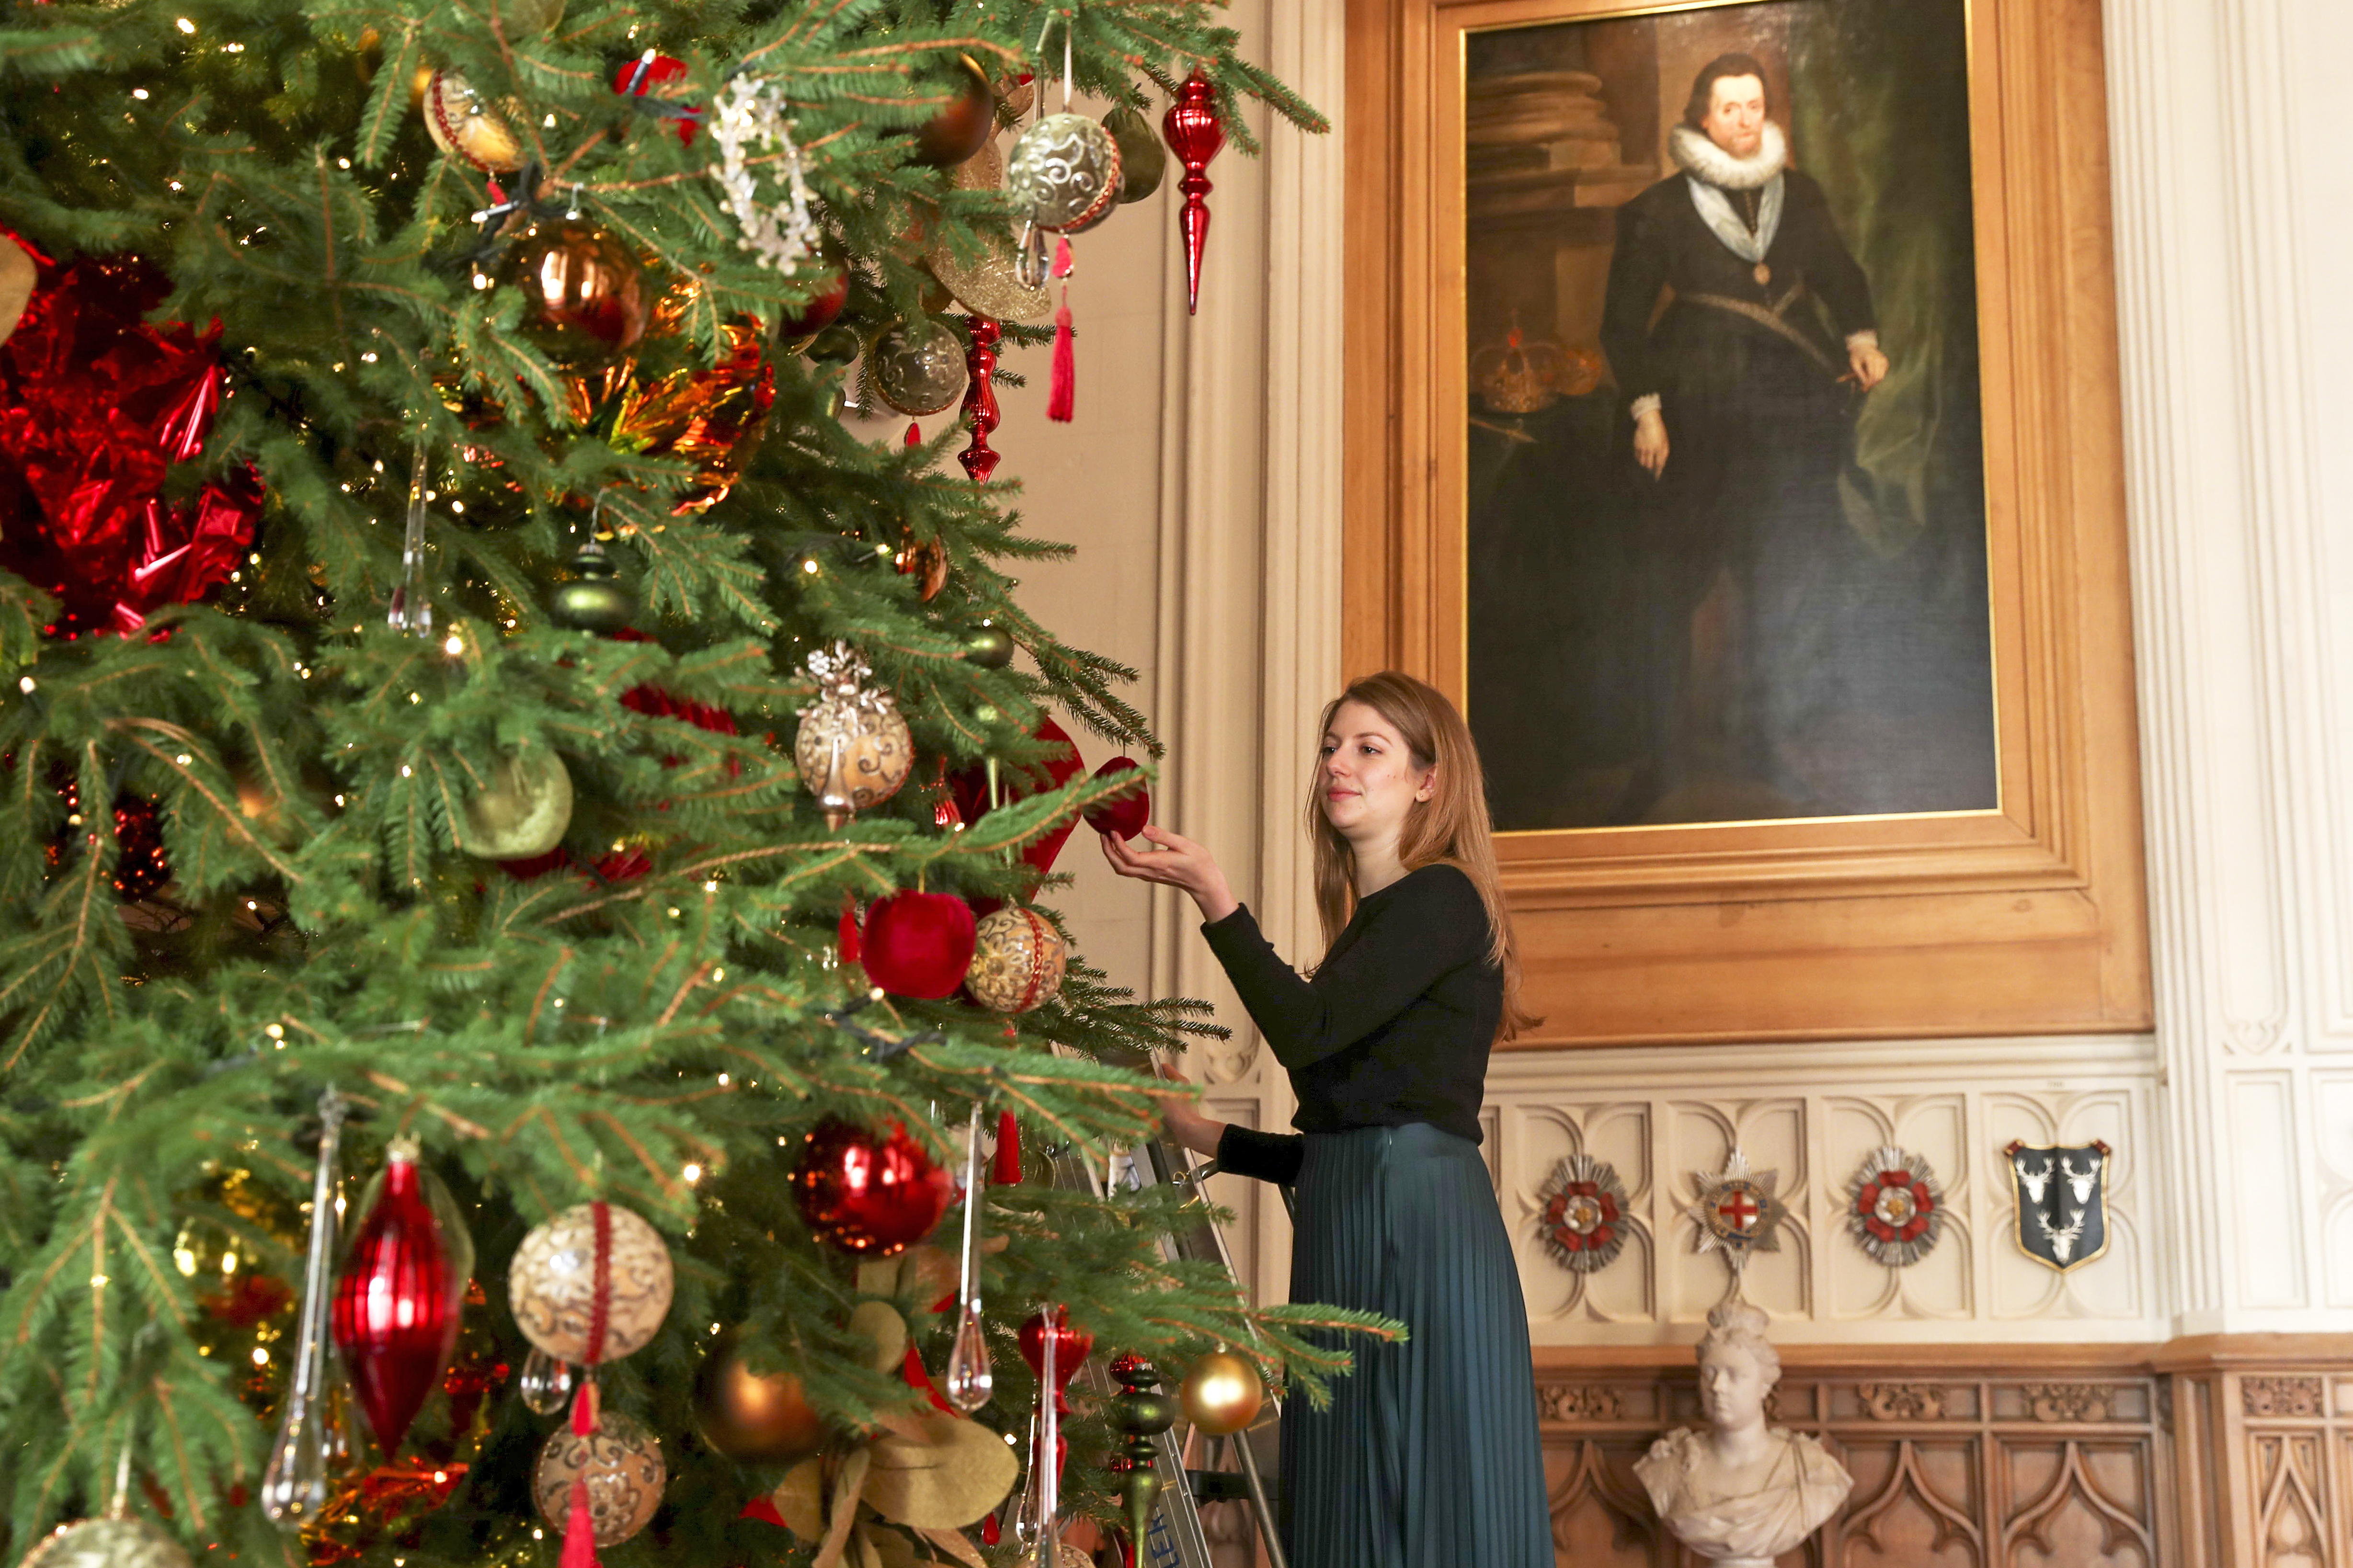 A Royal Collection Trust member of staff puts the finishing touches to a 20ft Nordmann fir tree, sourced from the Windsor Great Park, in St George's Hall at Windsor Castle, Berkshire. (Photo by Steve Parsons/PA Images via Getty Images)